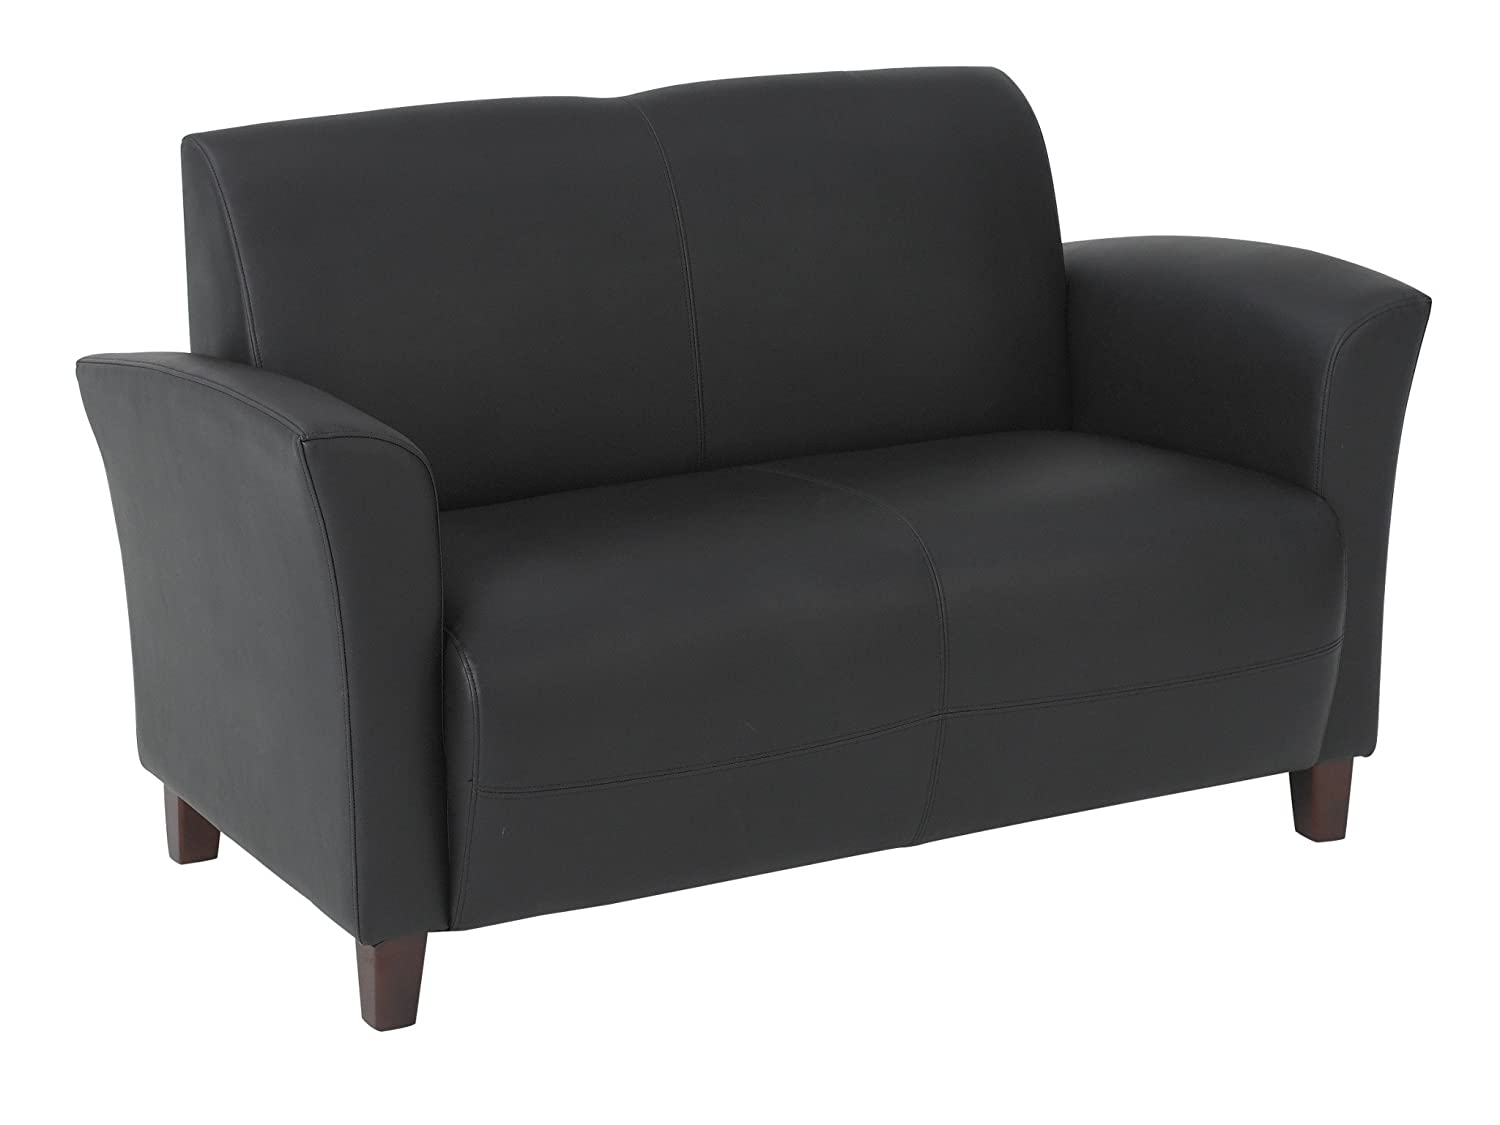 Office Star Breeze Bonded Leather Loveseat with Cherry Finish Legs, Black